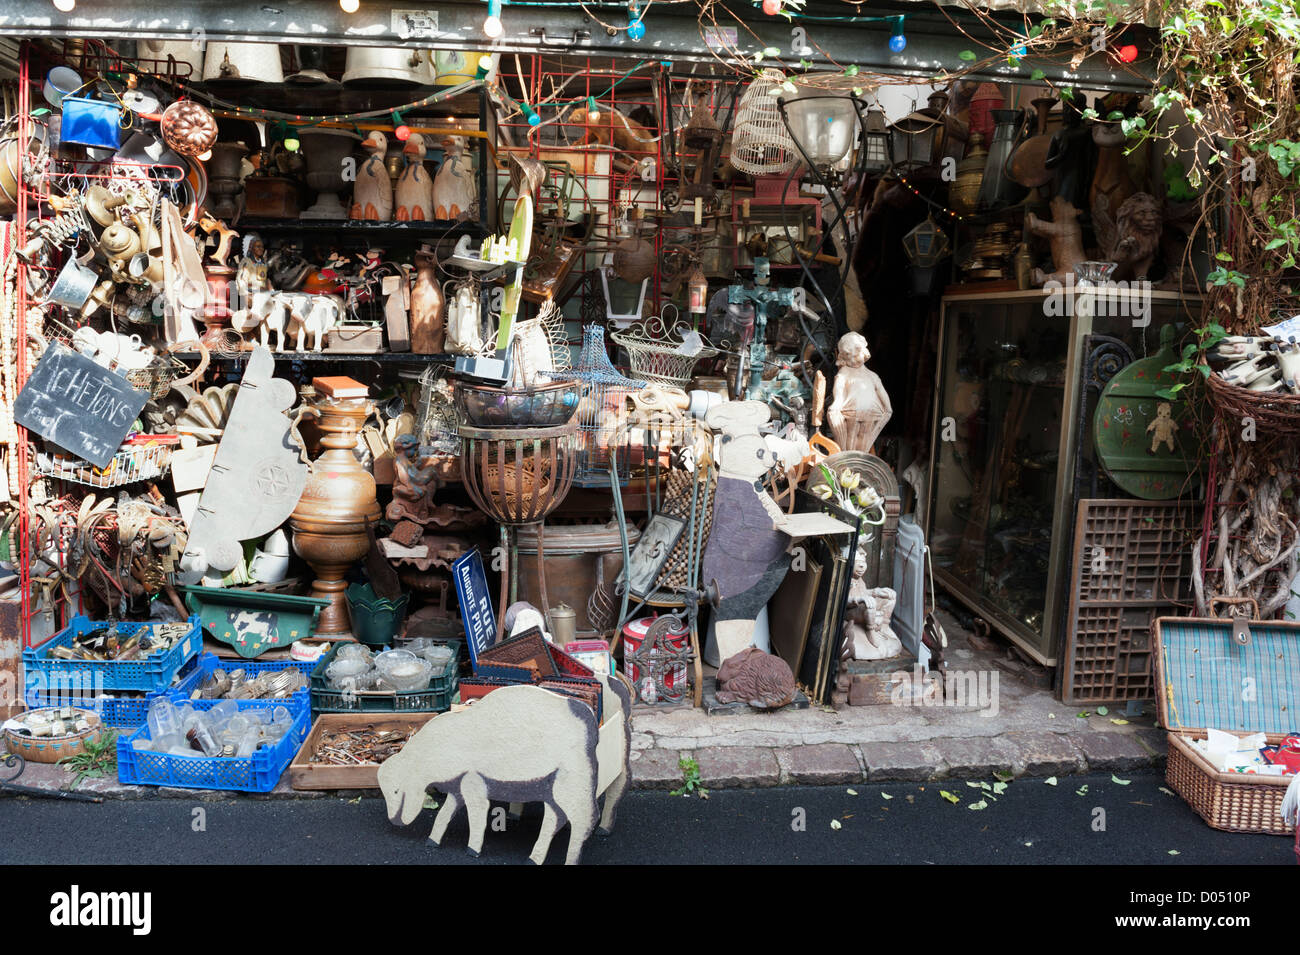 March aux puces flea market at st ouen near to clignancourt in the stock photo royalty free - Marche aux puces de saint ouen saint ouen ...